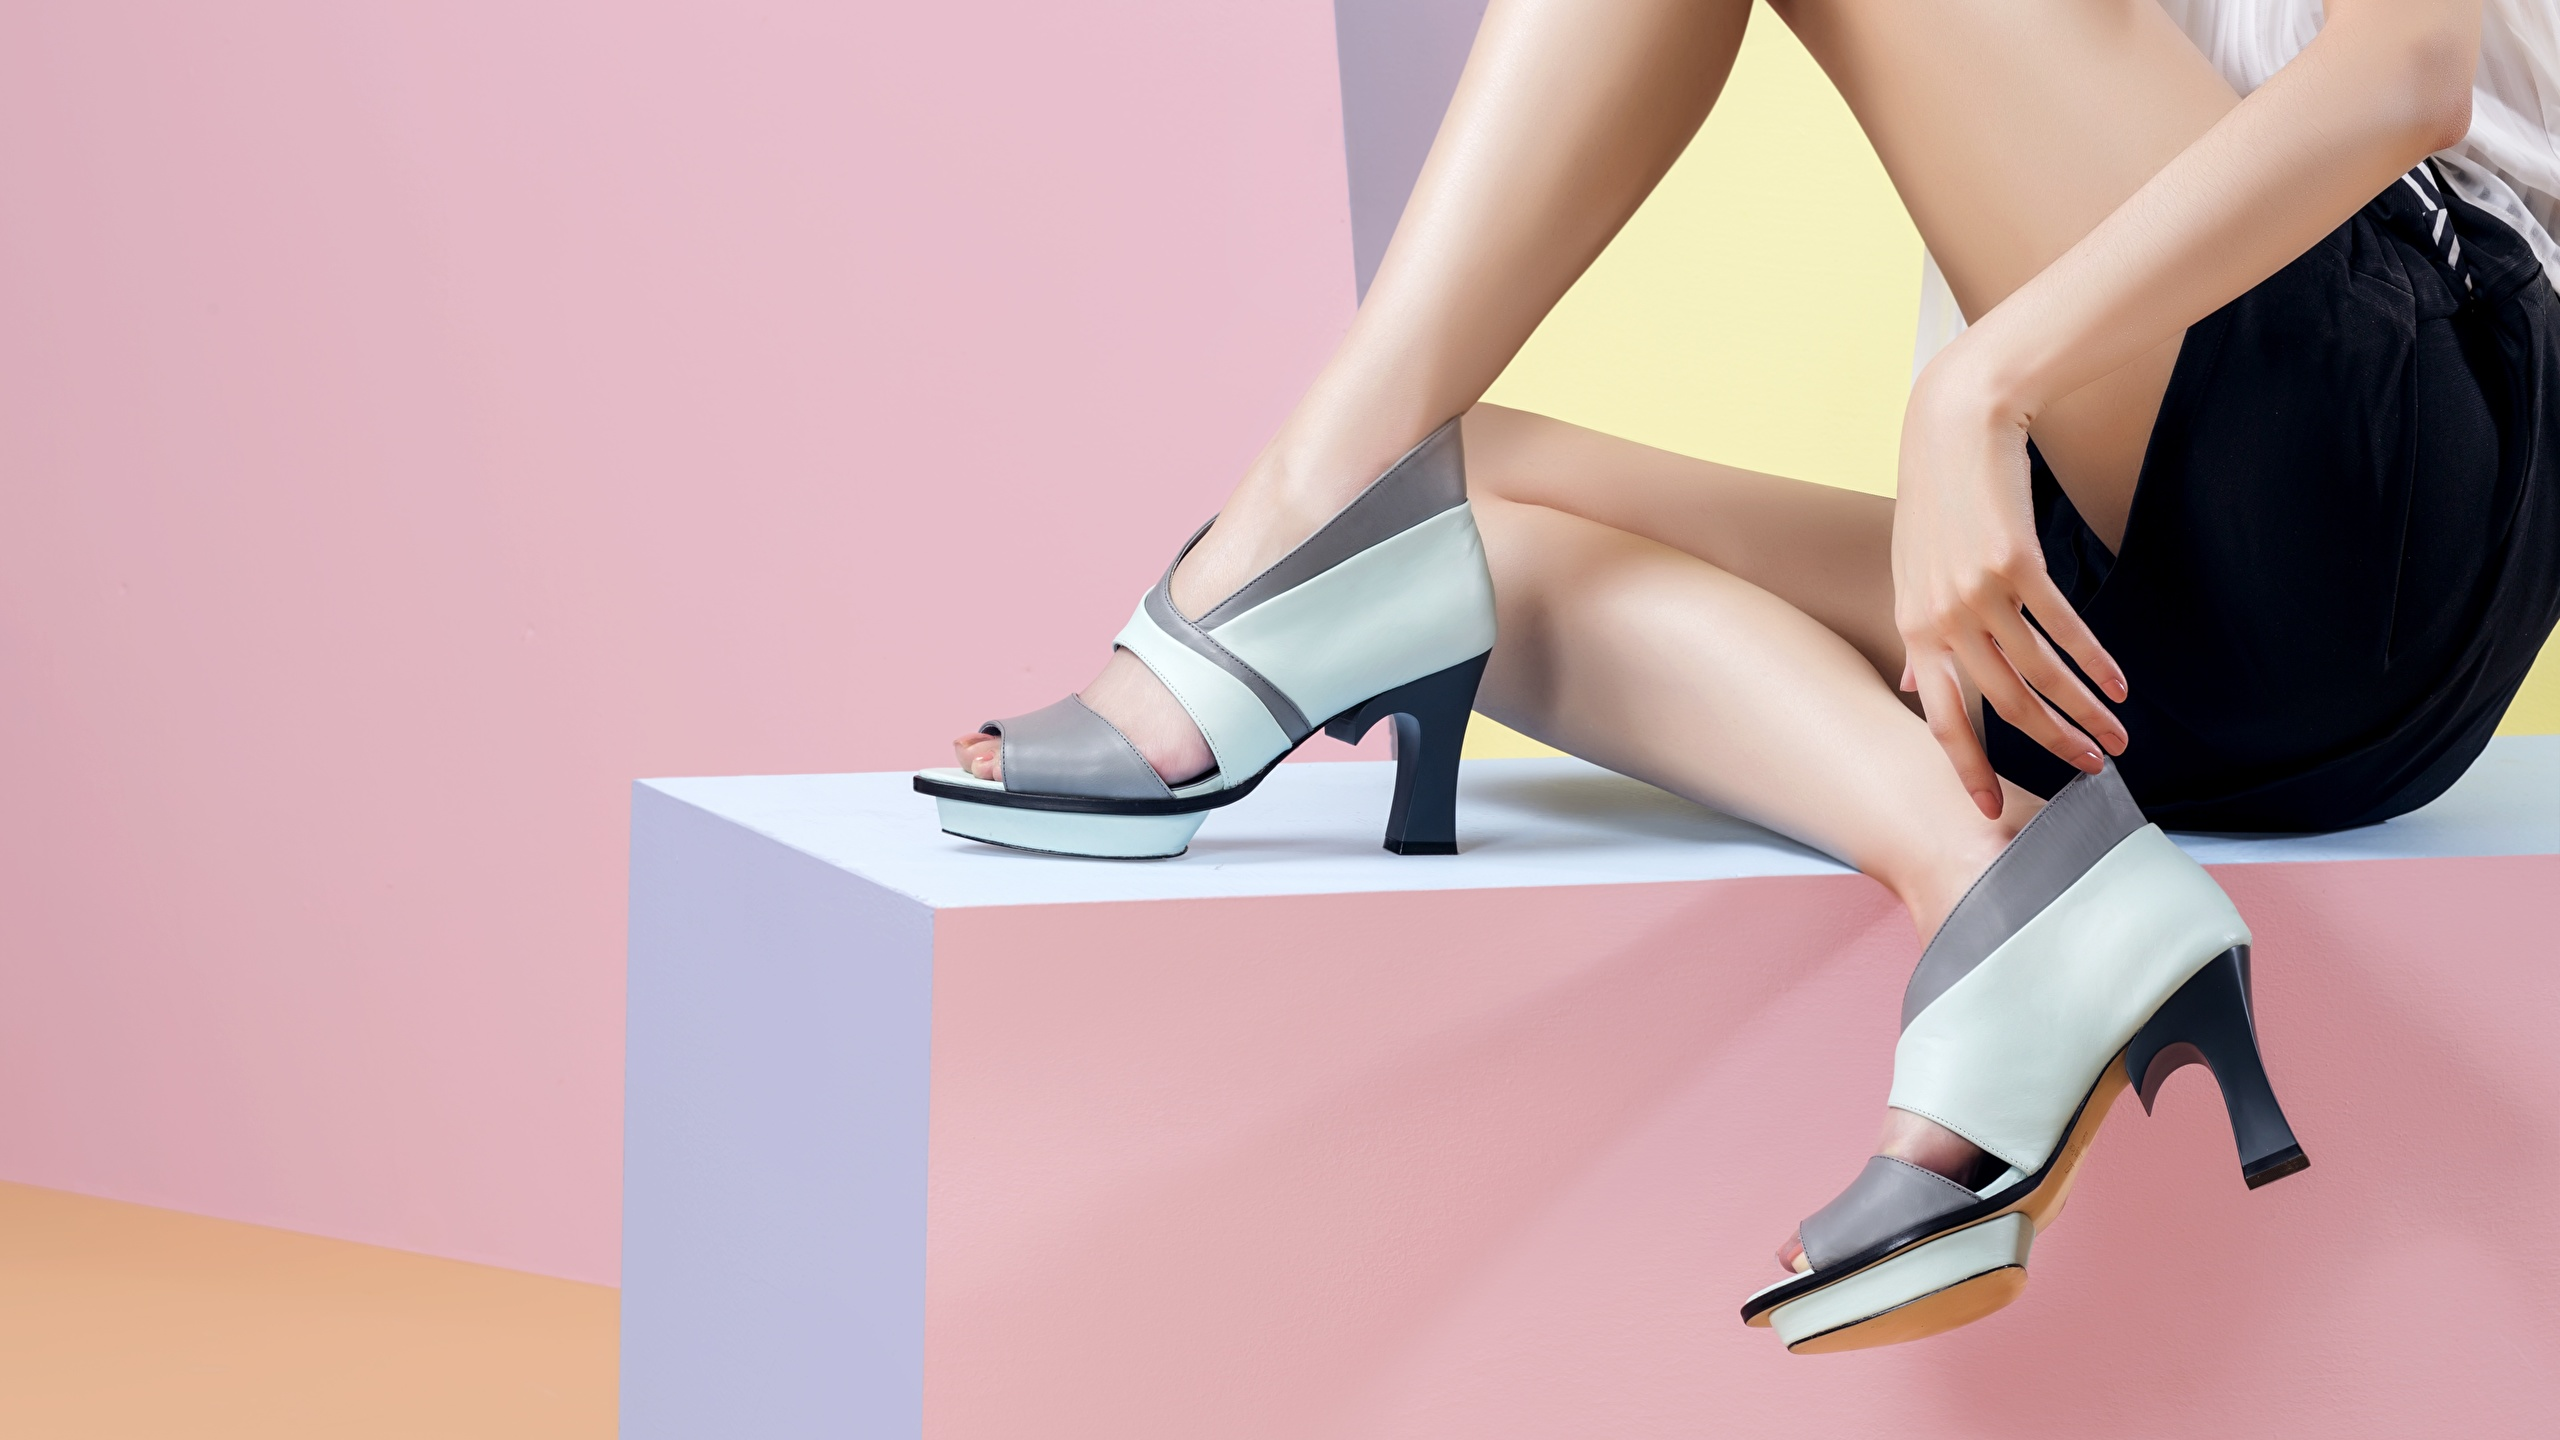 Read more about the article Types Of Footwear For Women In 2021